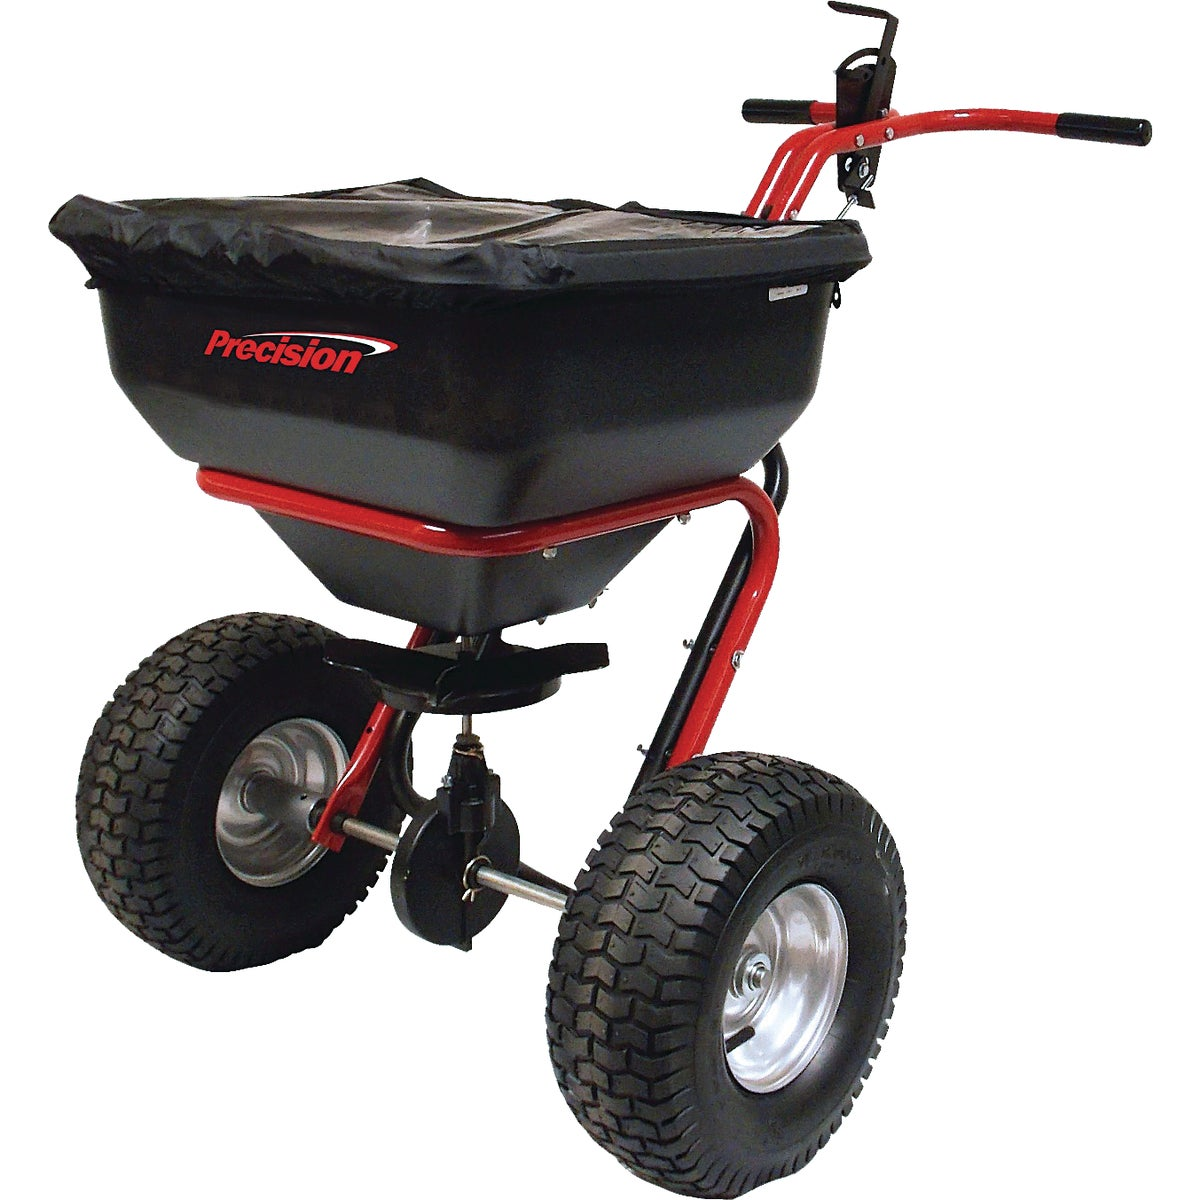 130LB BROADCAST SPREADER - SB6500 by Precision Prod Inc